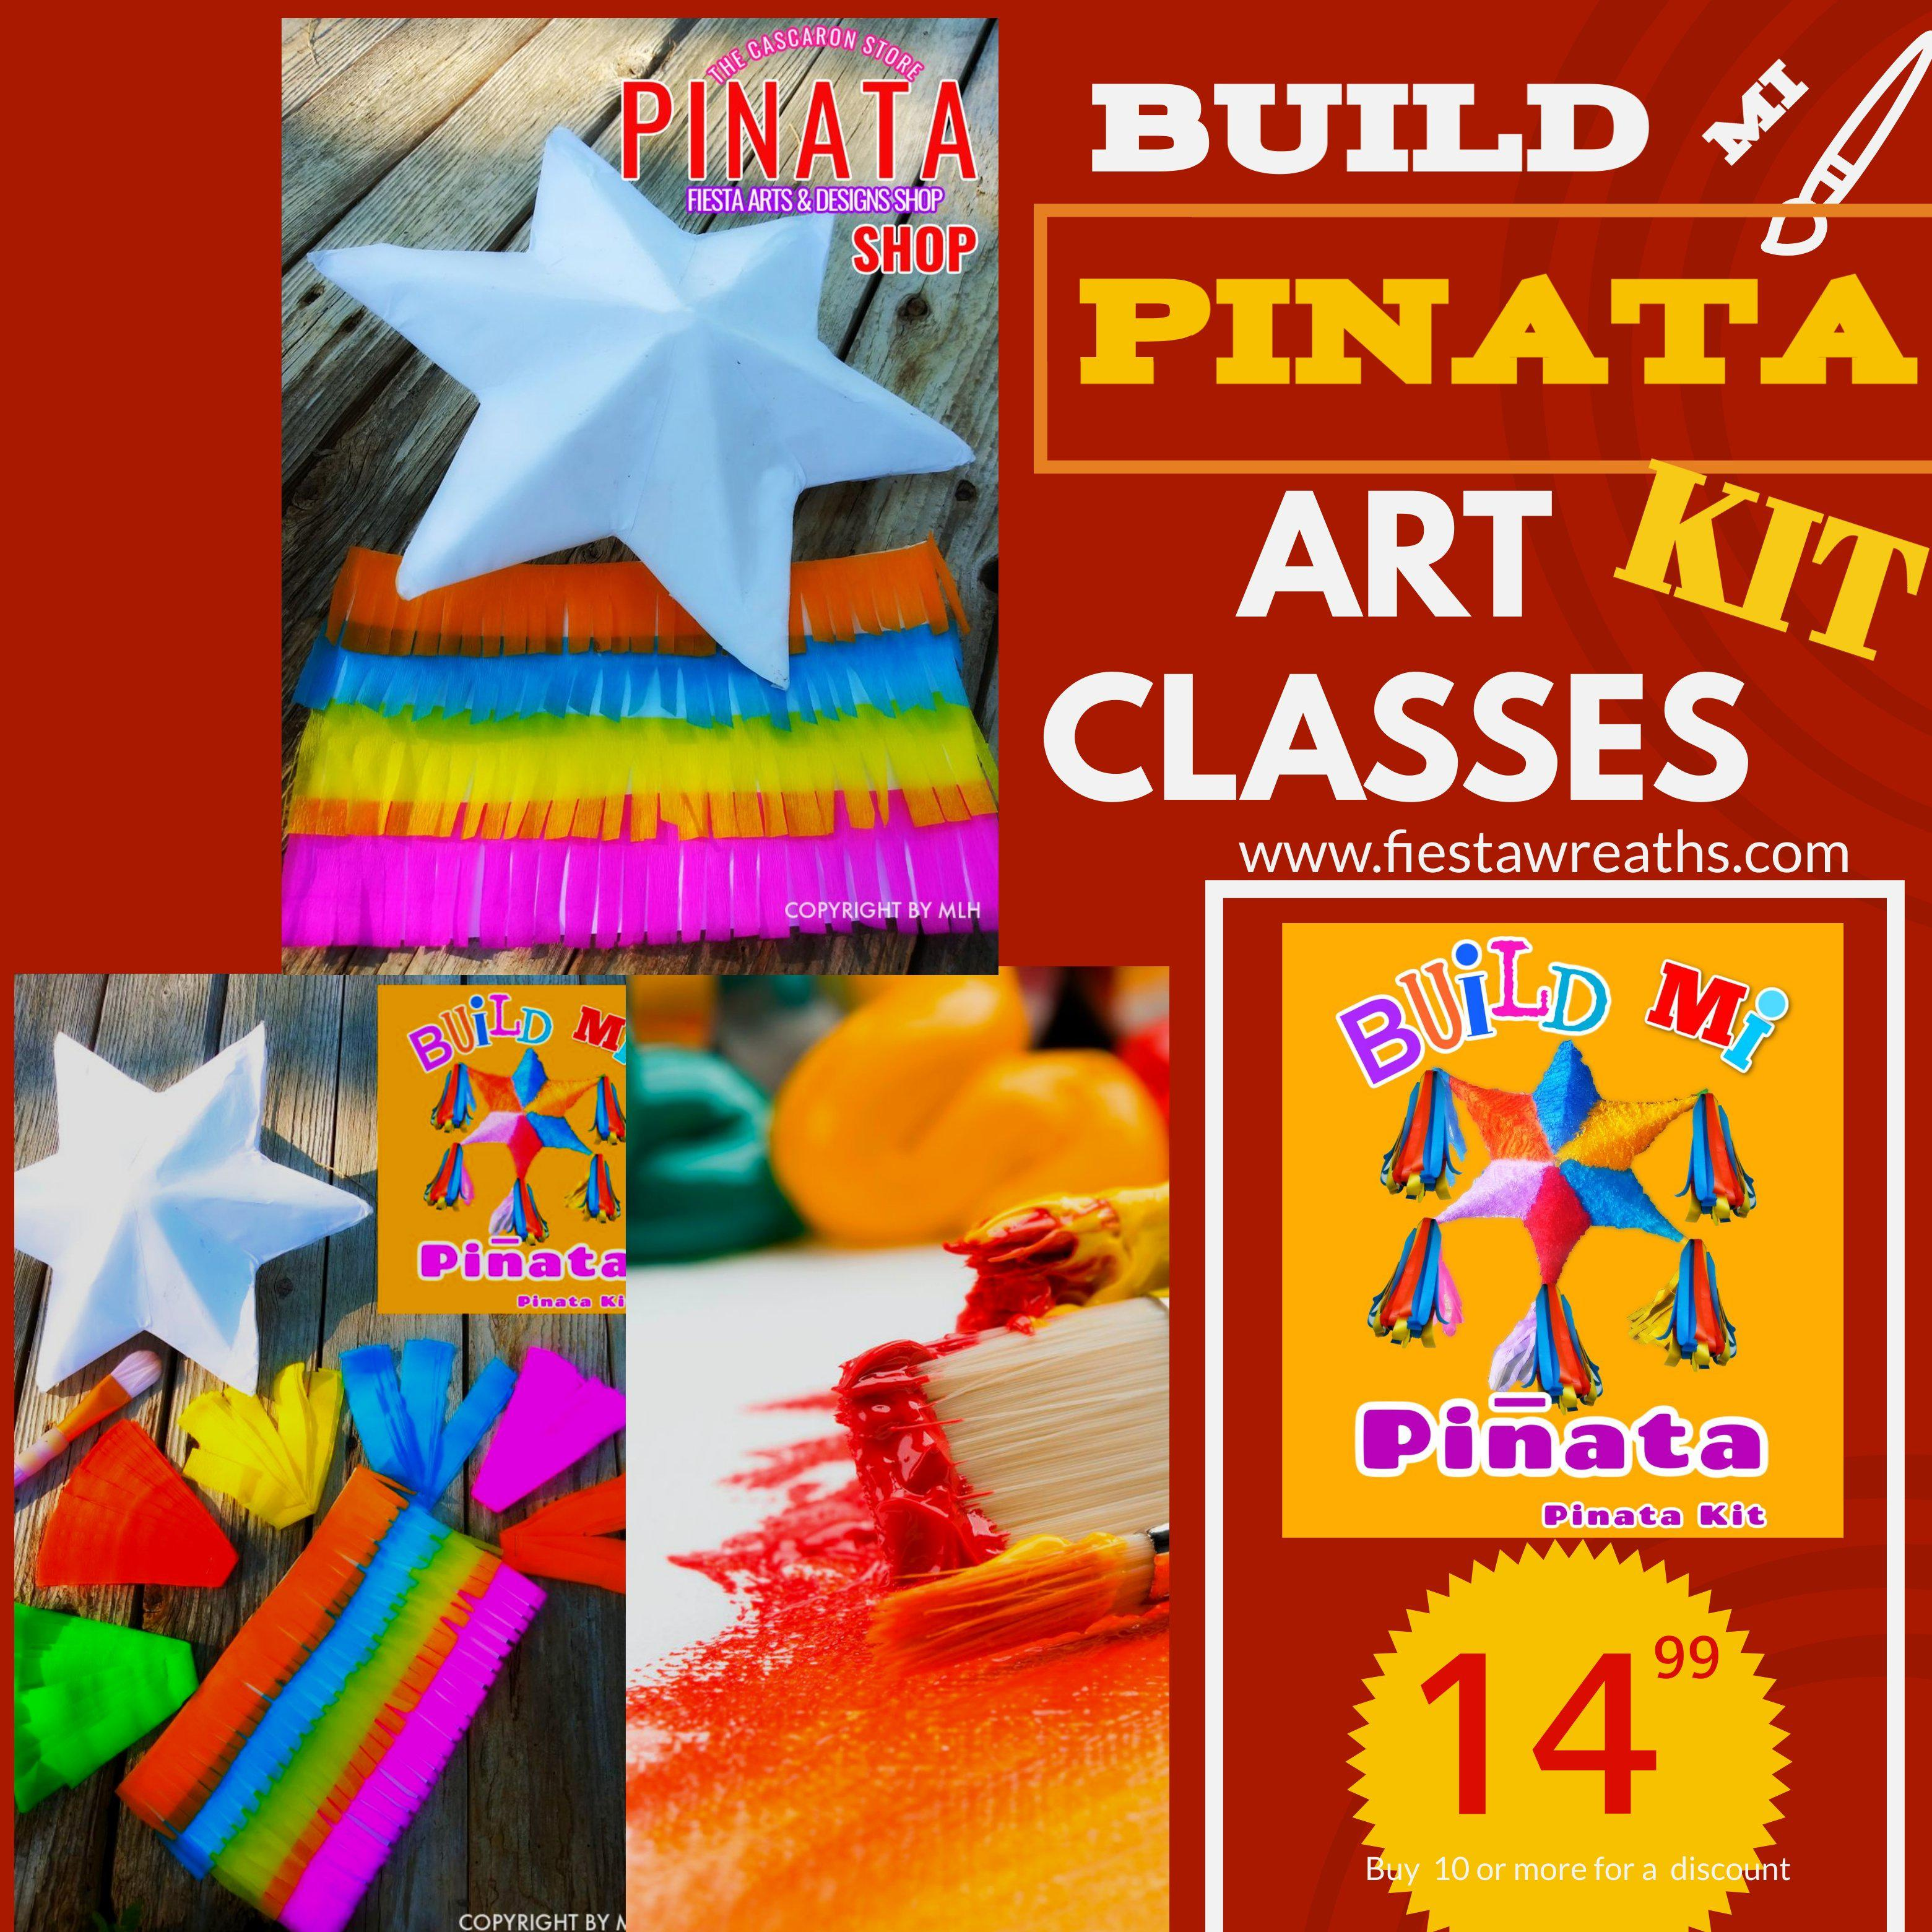 Build Mi Pinata Kit Build Mi Pinata Kit - Fiesta Arts Designs